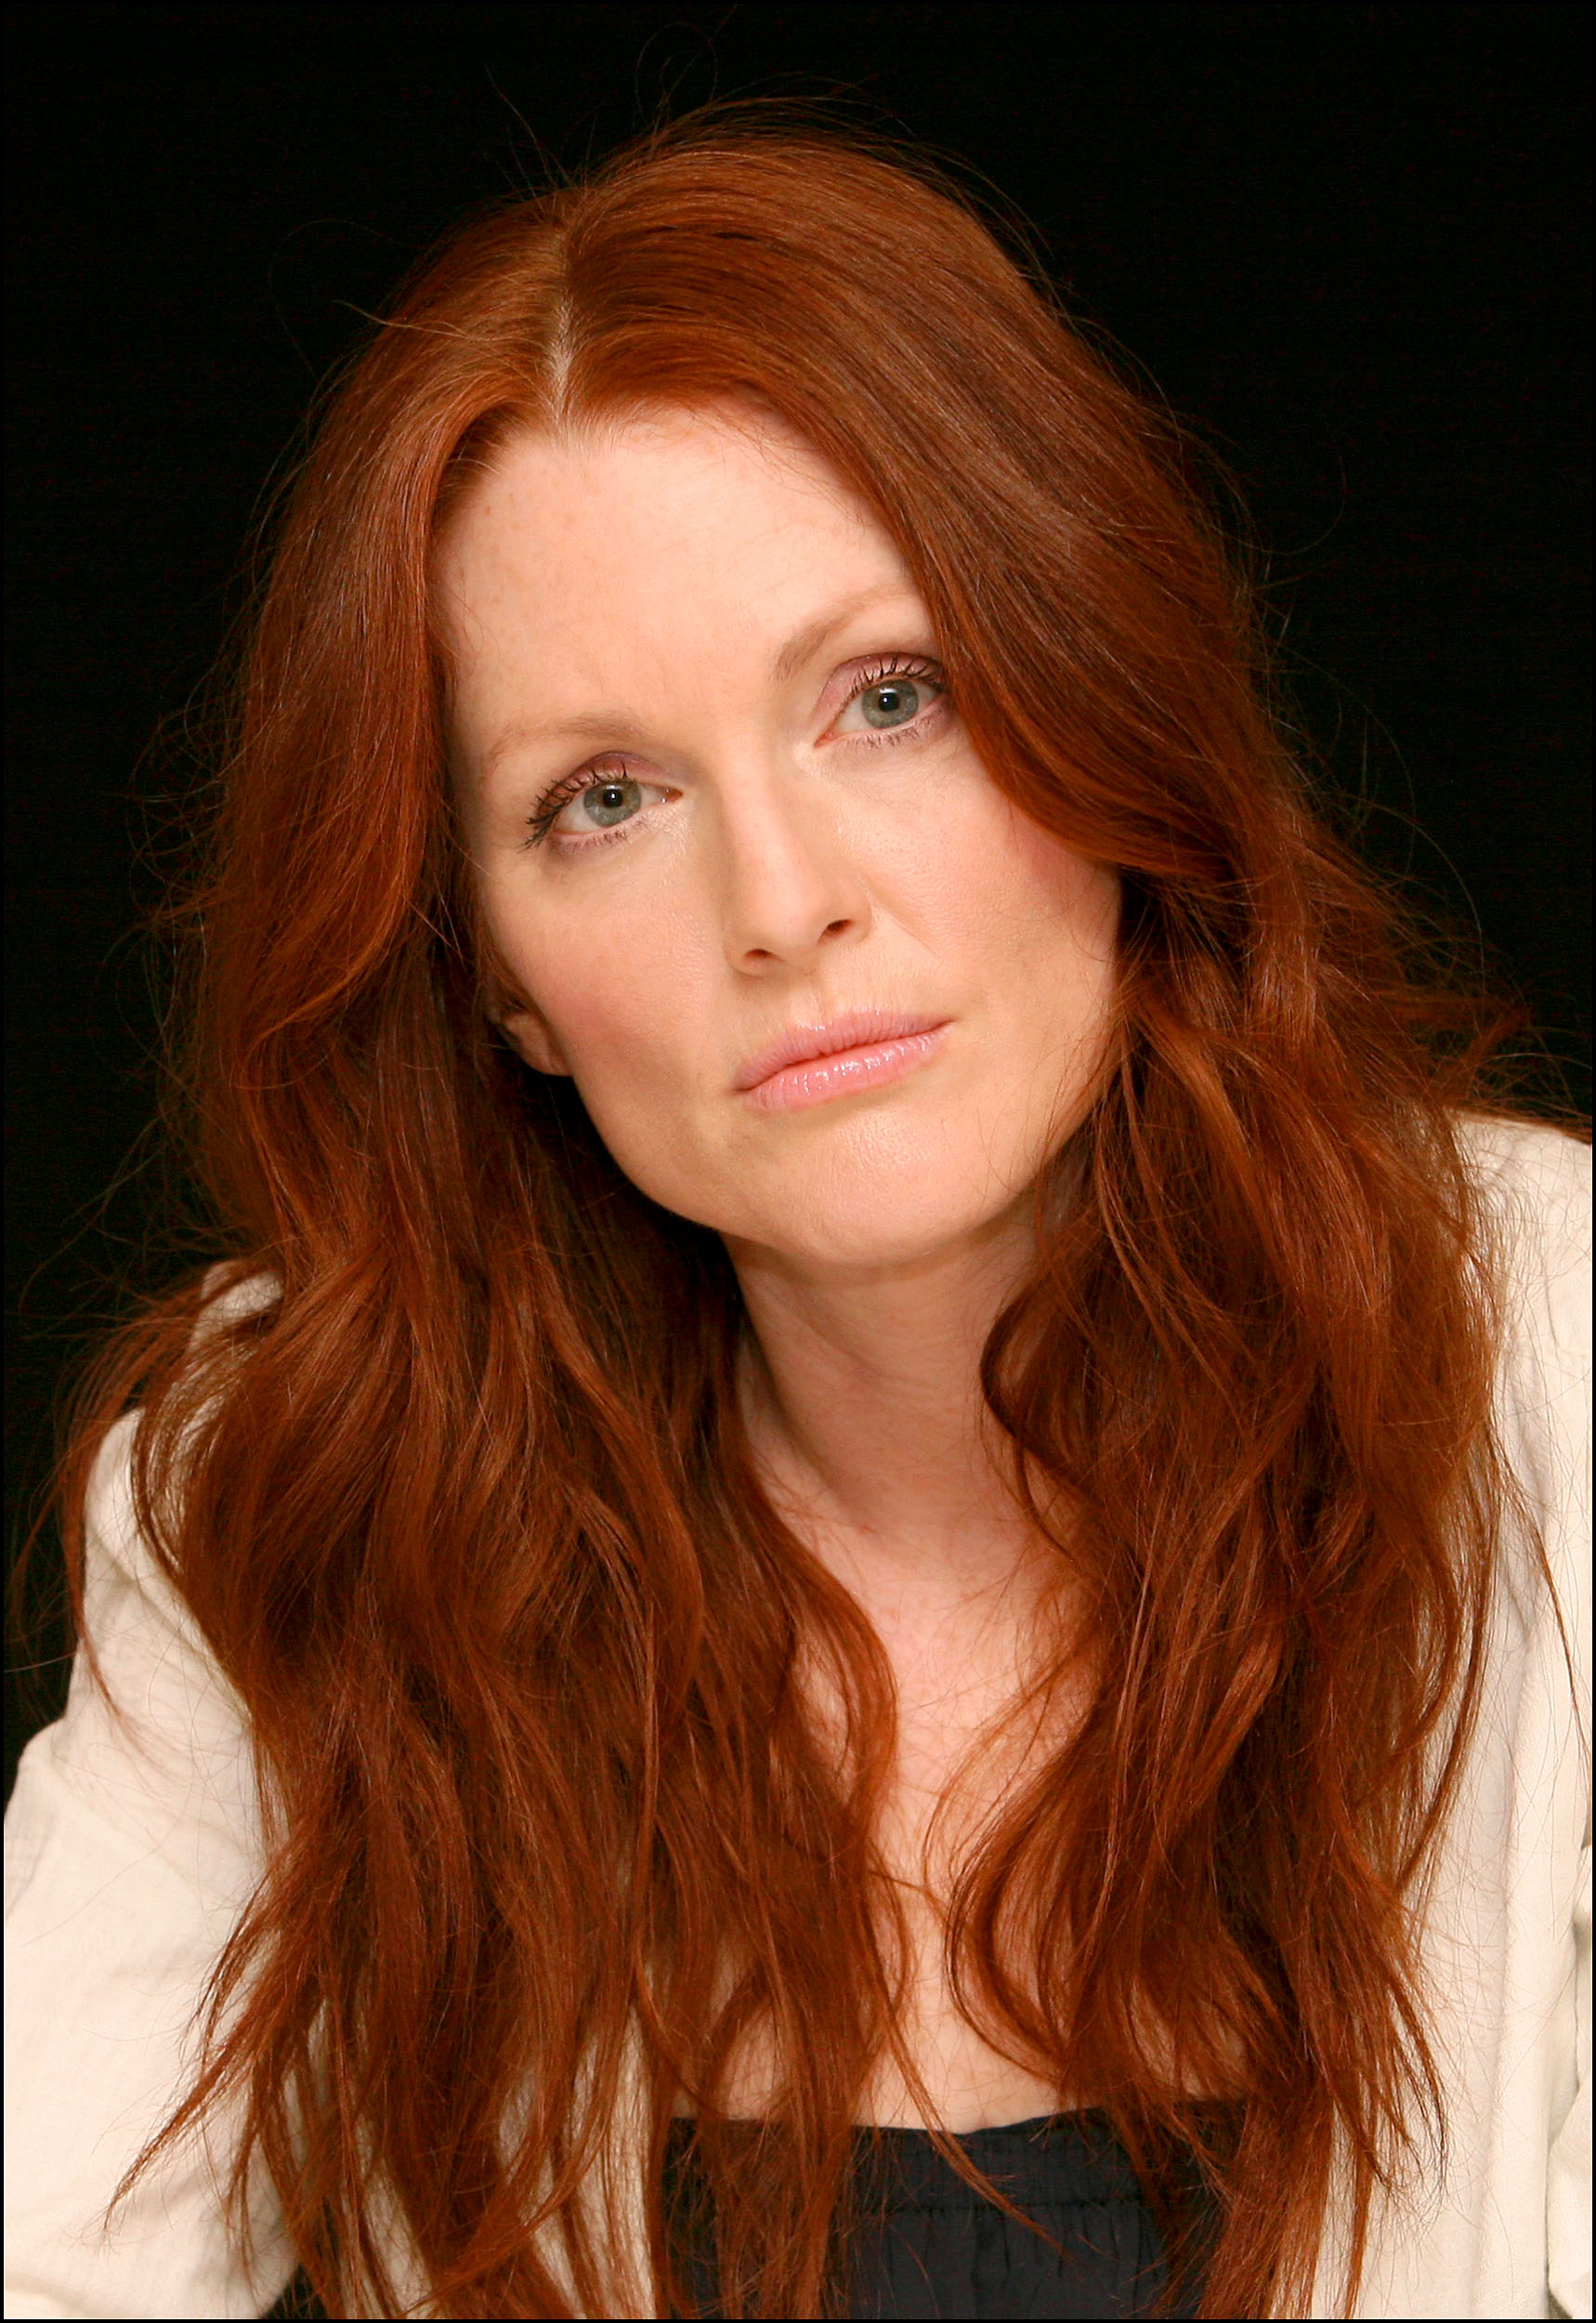 Julianne Moore photo, pics, wallpaper - photo #238224